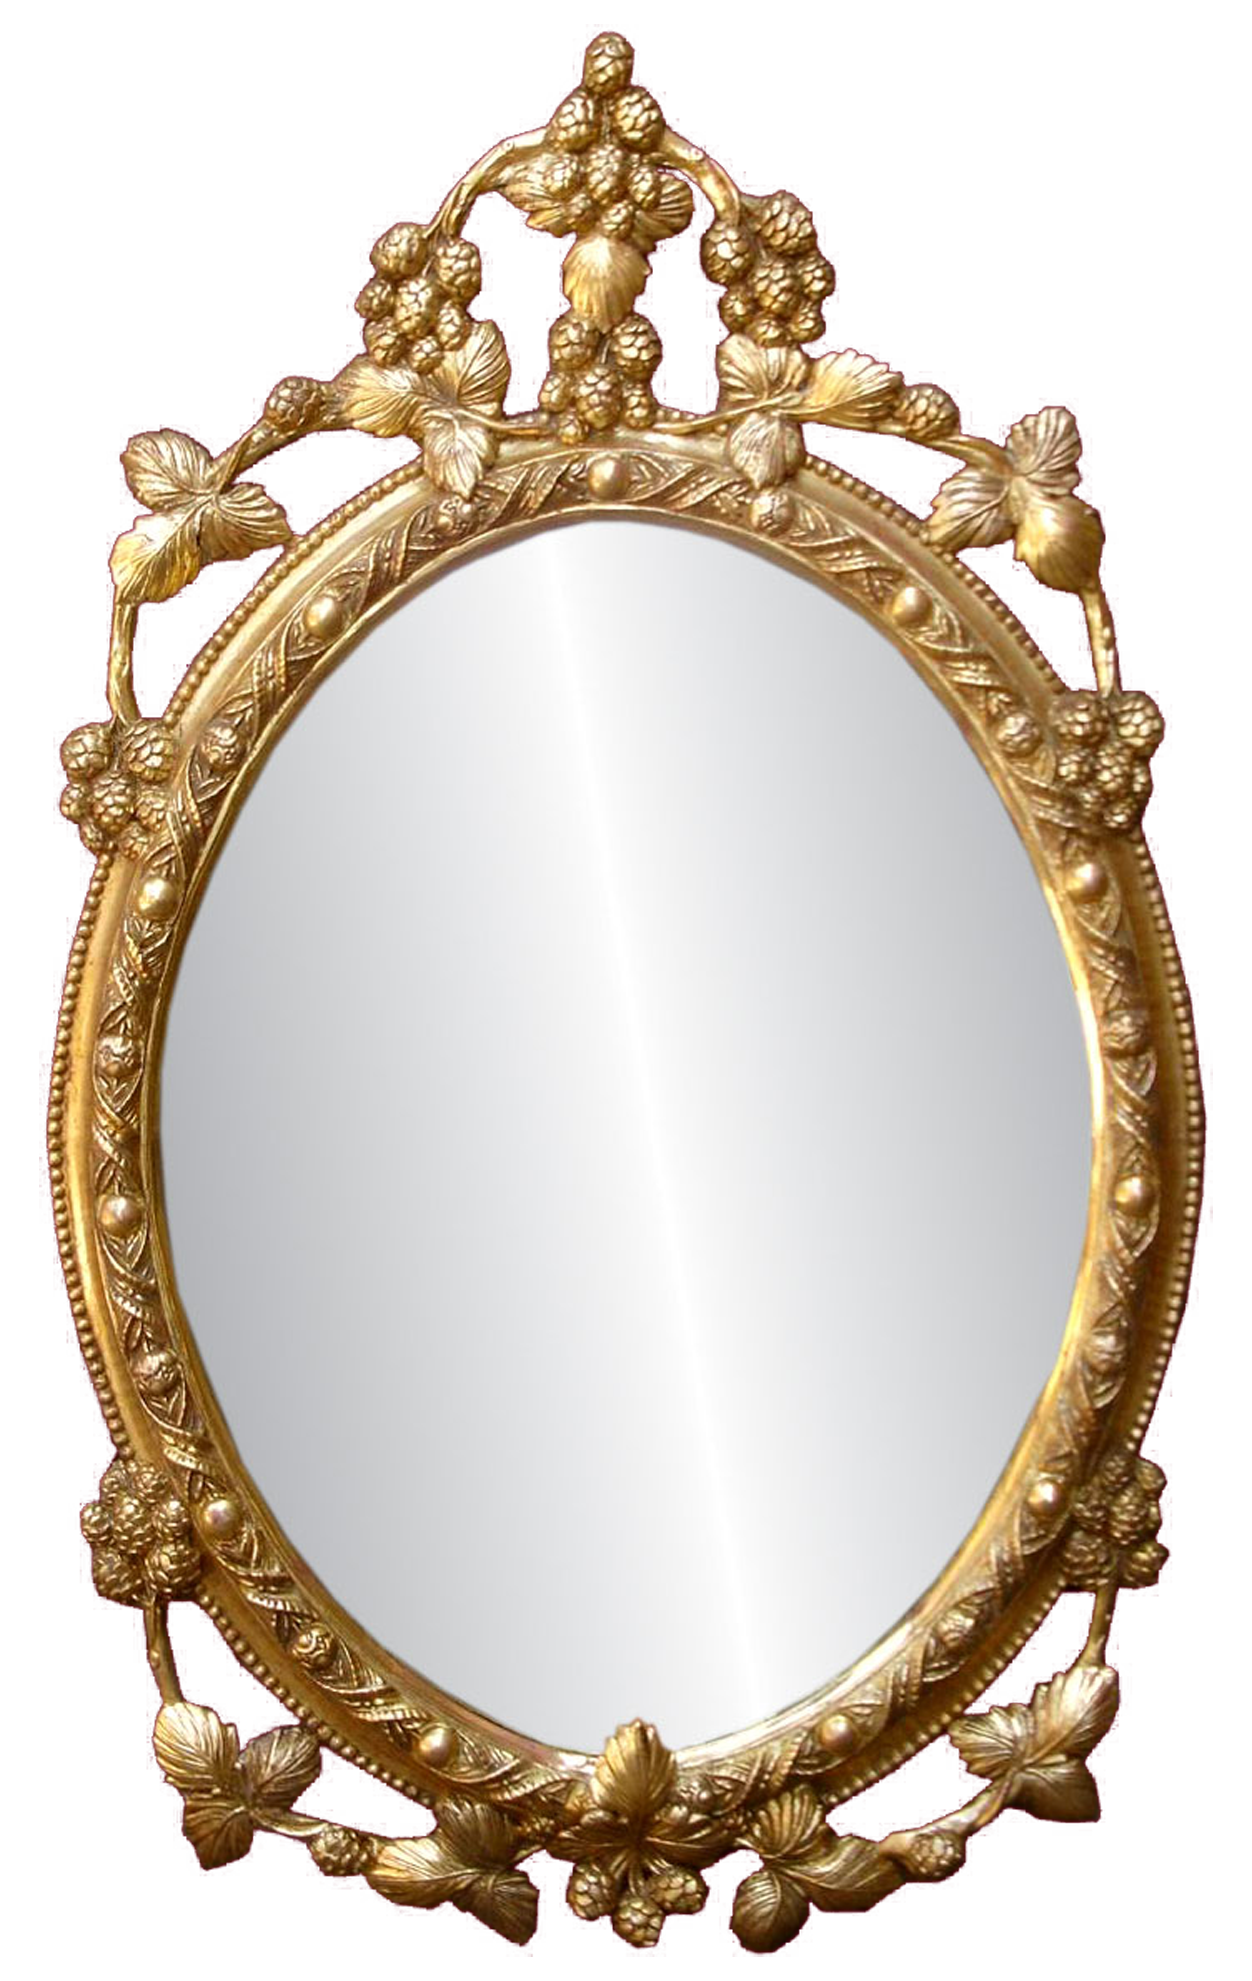 D images at clker. Mirror clipart free vector